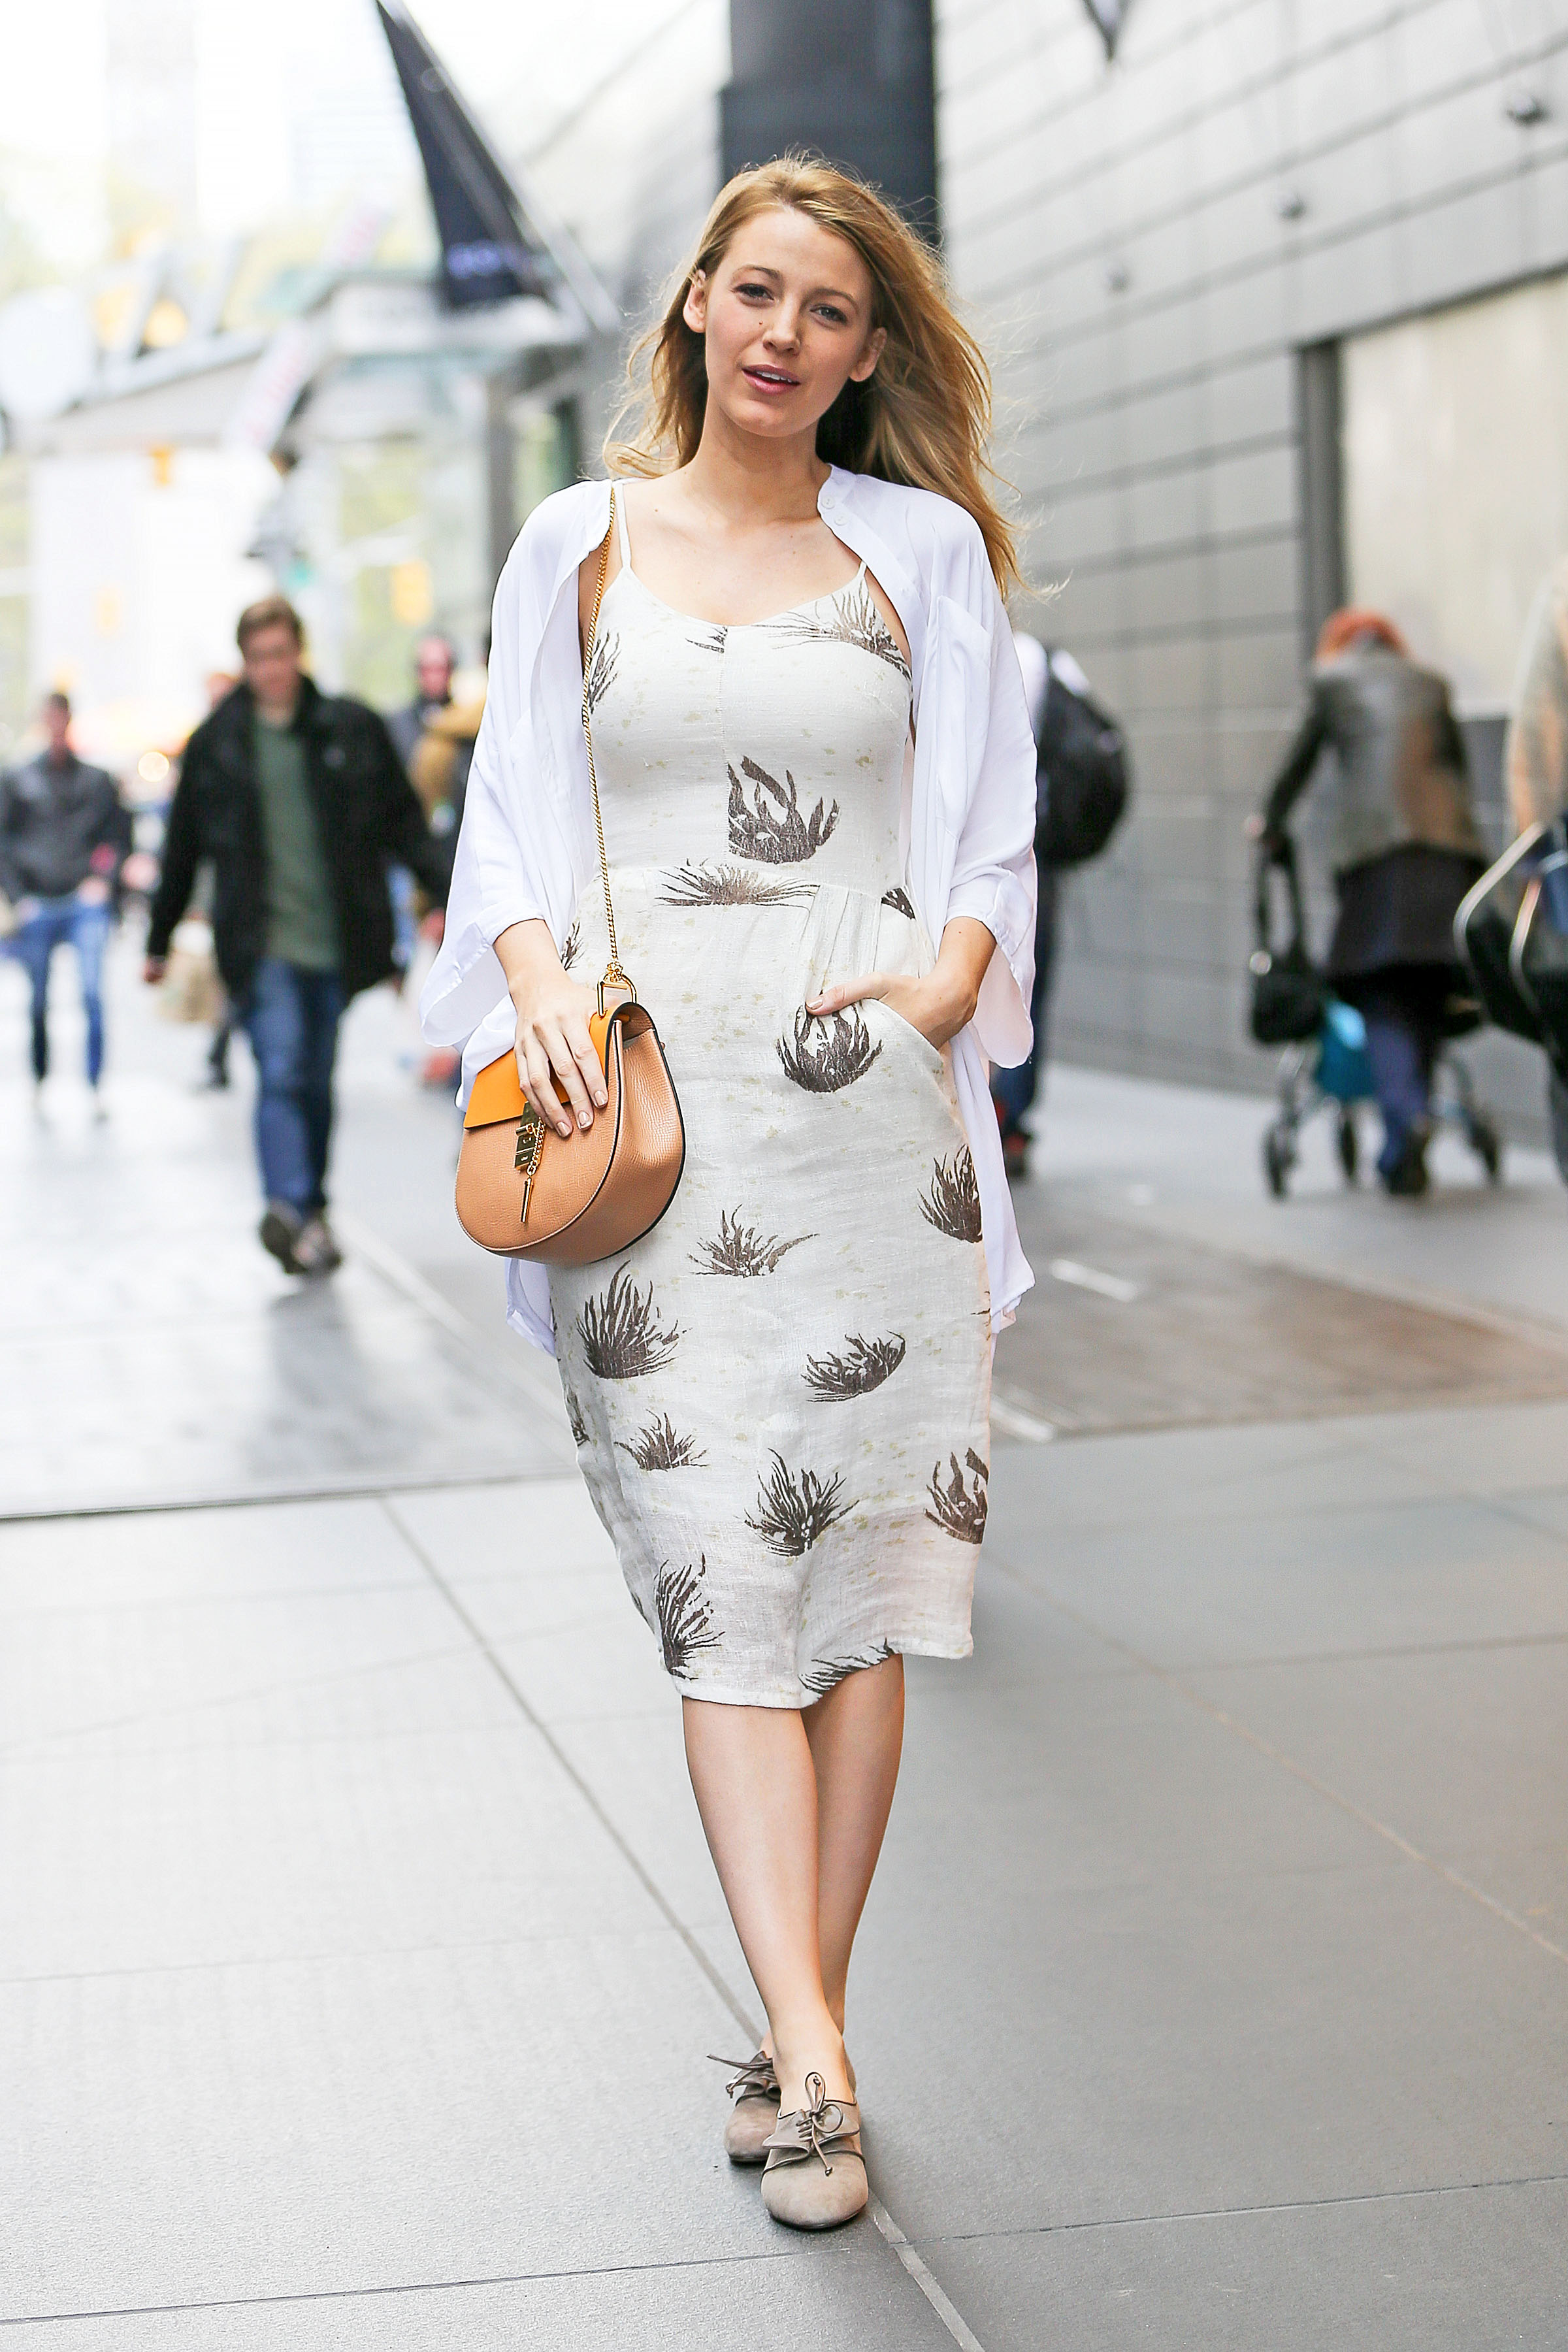 Blake Lively 39 S Best Outfits In Photos